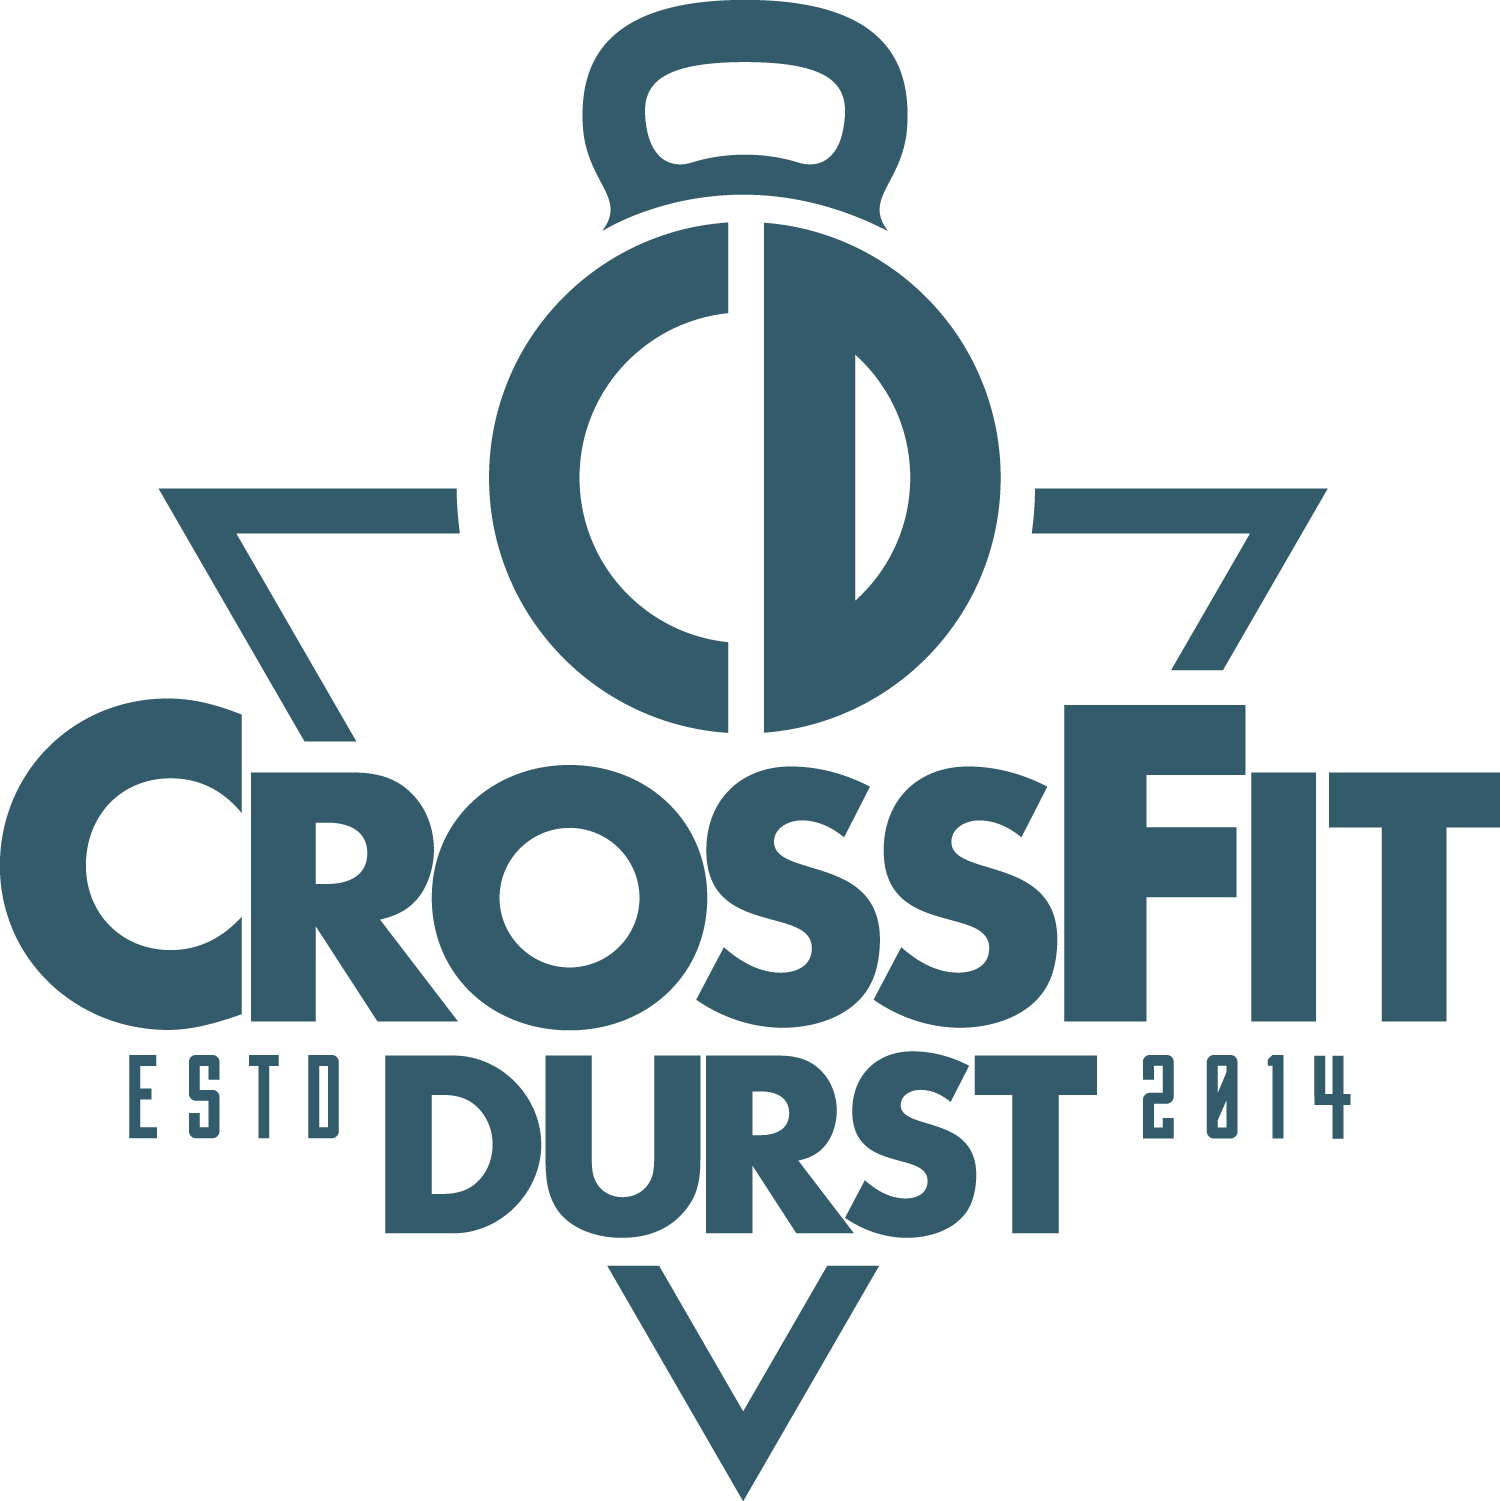 Top 10 Gifts to Buy a CrossFitter this